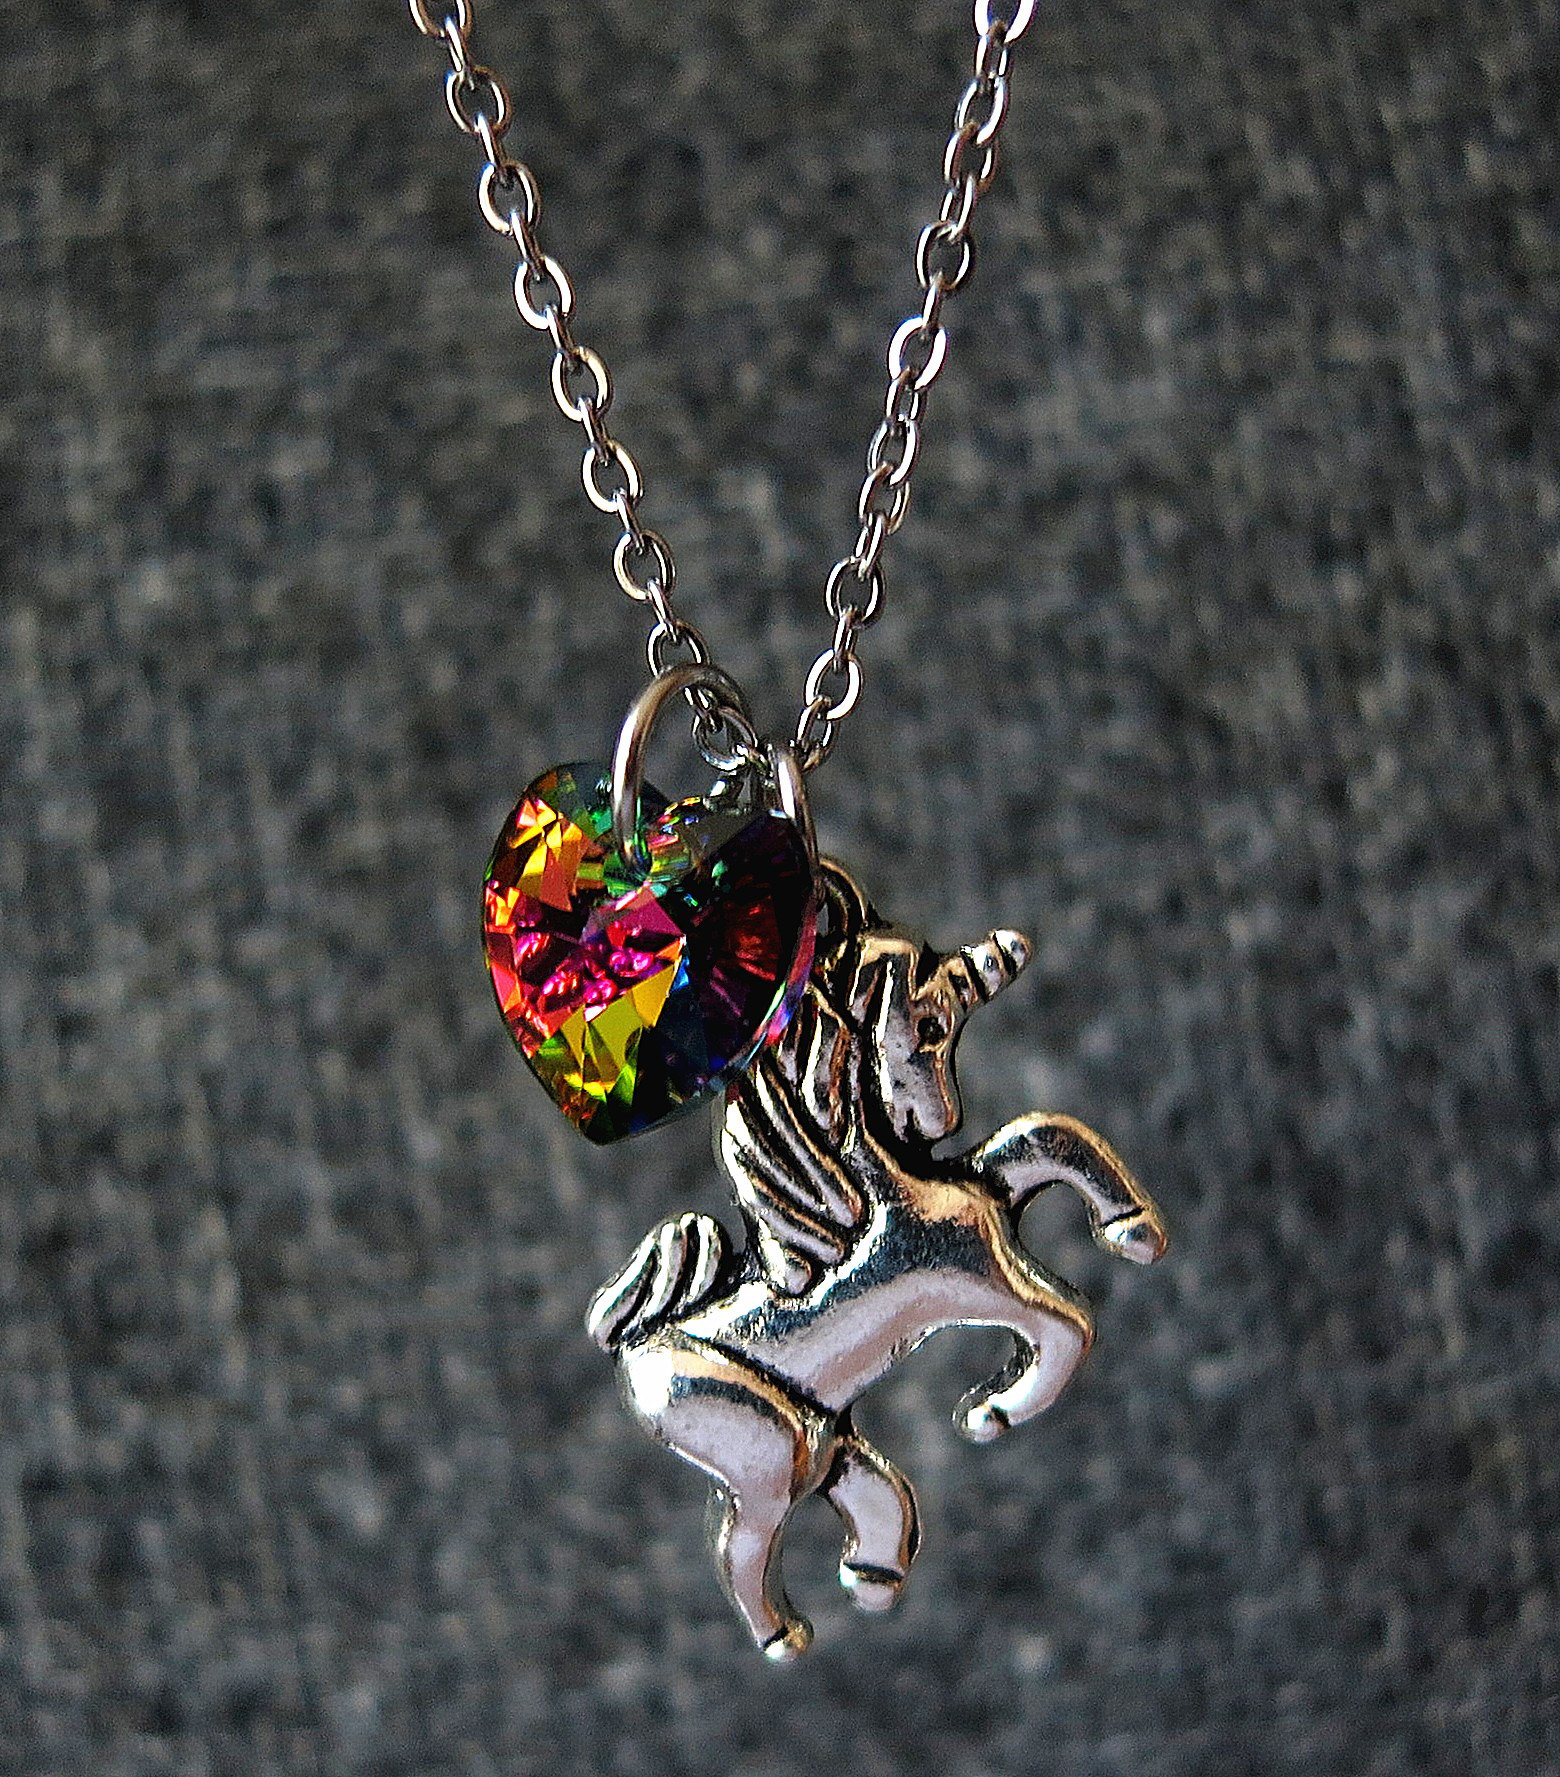 Girl Gift Unicorn Necklace with Rainbow Color Heart Crystal,Rainbow Unicorn Necklace,Fairy Tale Necklace, Fantasy Necklace, Animal Necklace 6